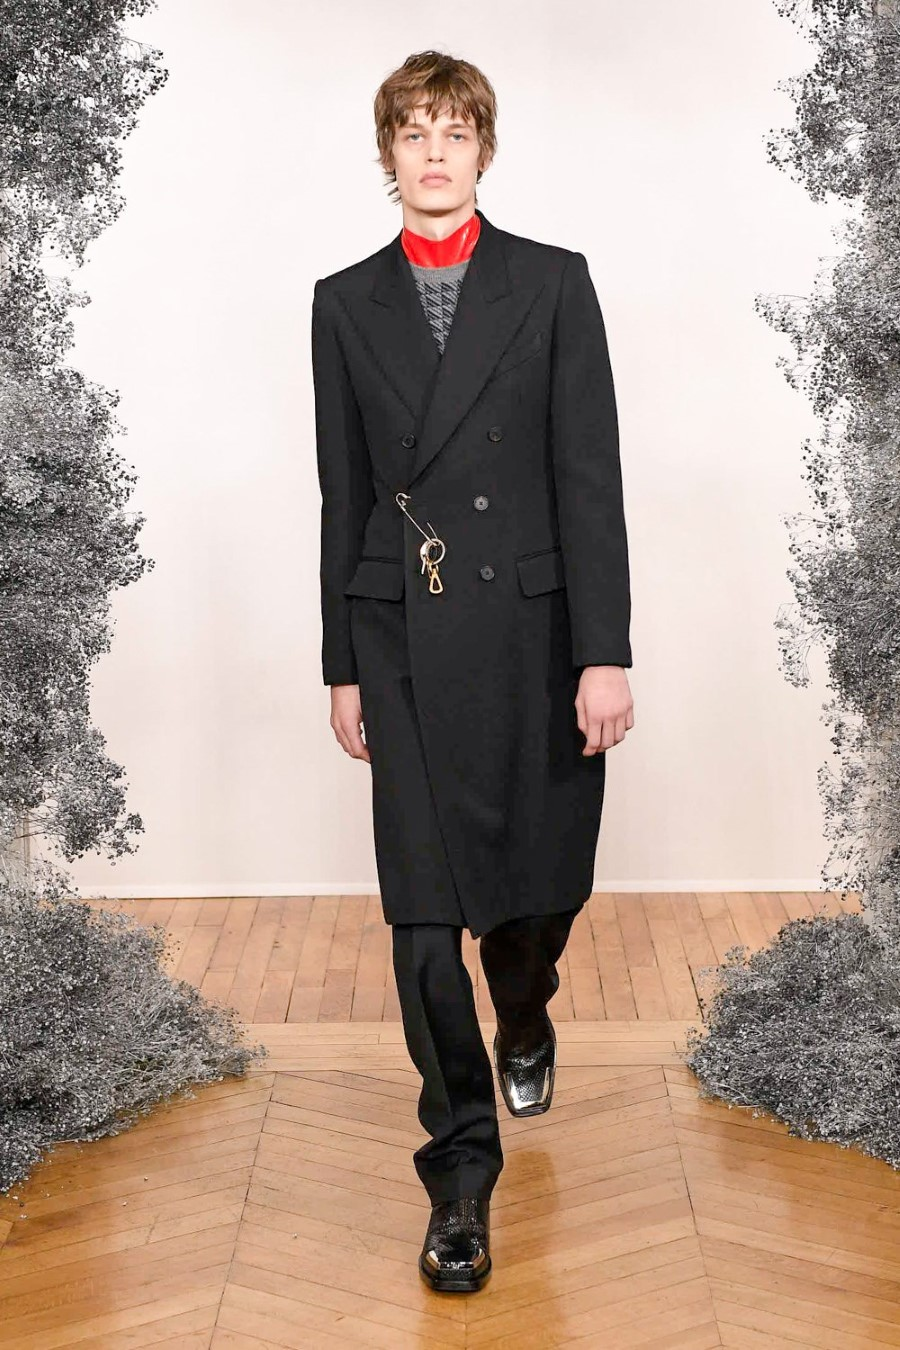 Givenchy - Fall Winter 2020 - Paris Fashion Week Men's